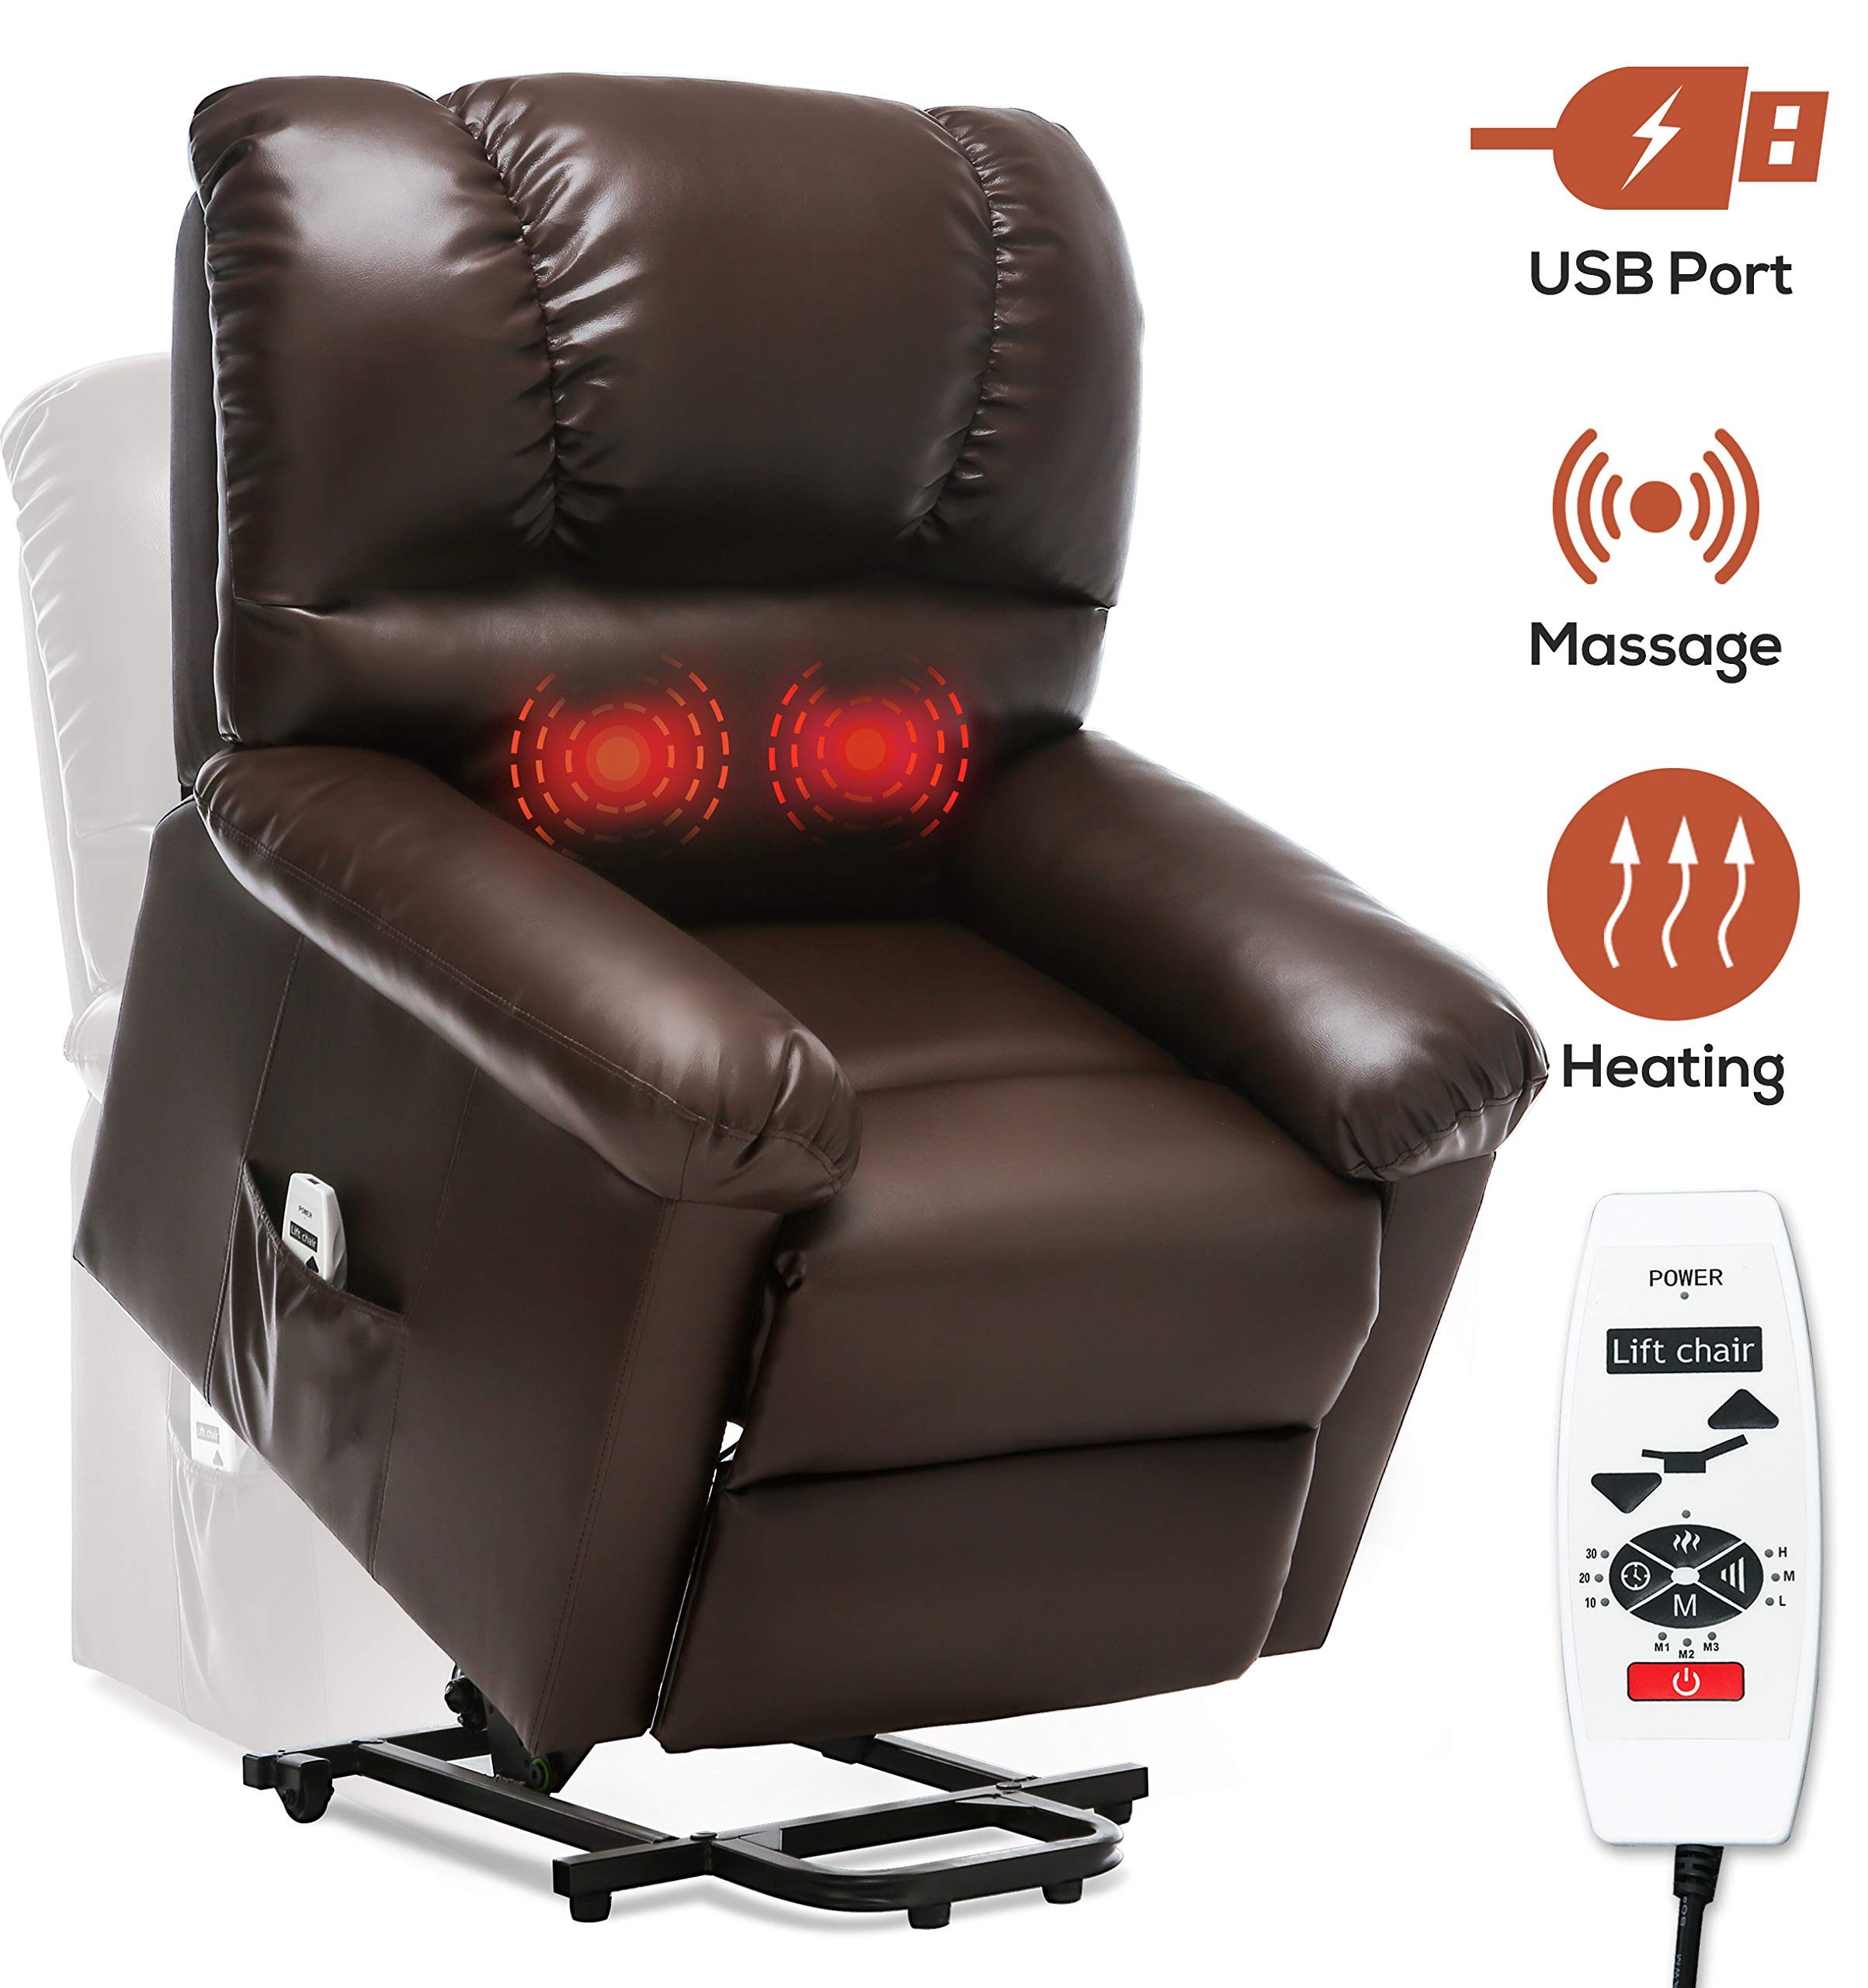 IKOCO 2 Button Side Hand Control Arm Electric Recliner Lift Chair Replacement Hand Control Handset 5 Pins